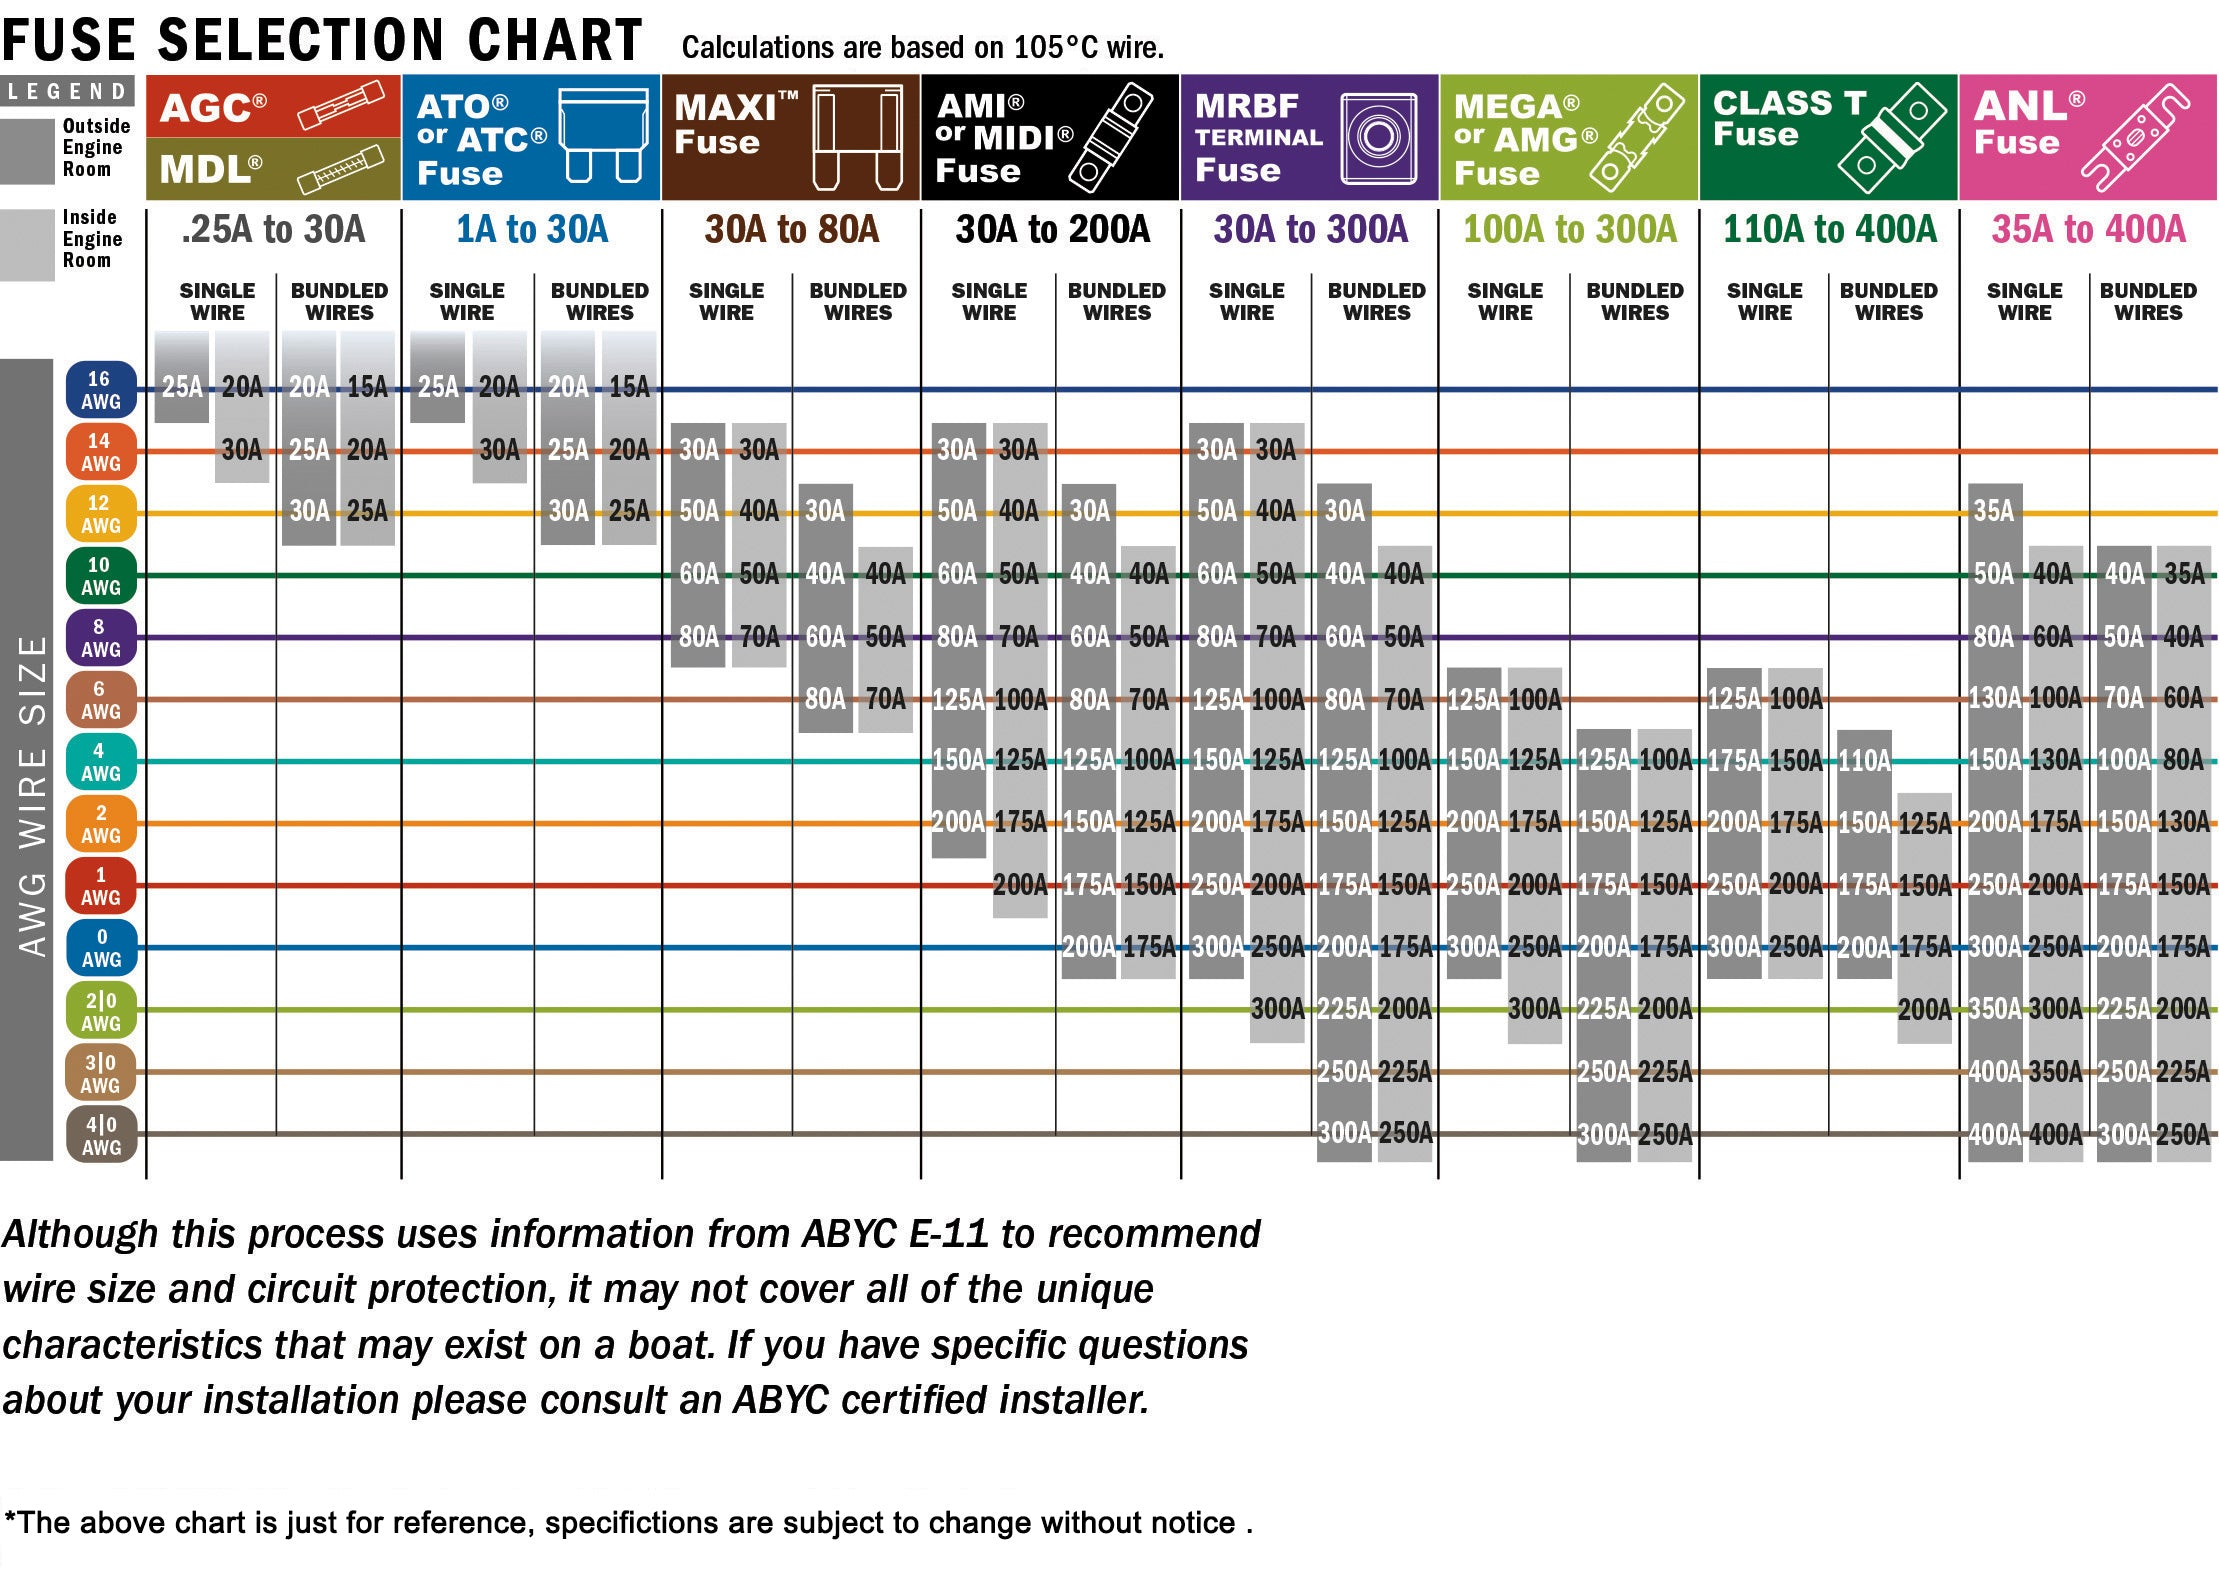 fuse selection chart from Pooxtra Power Inverter